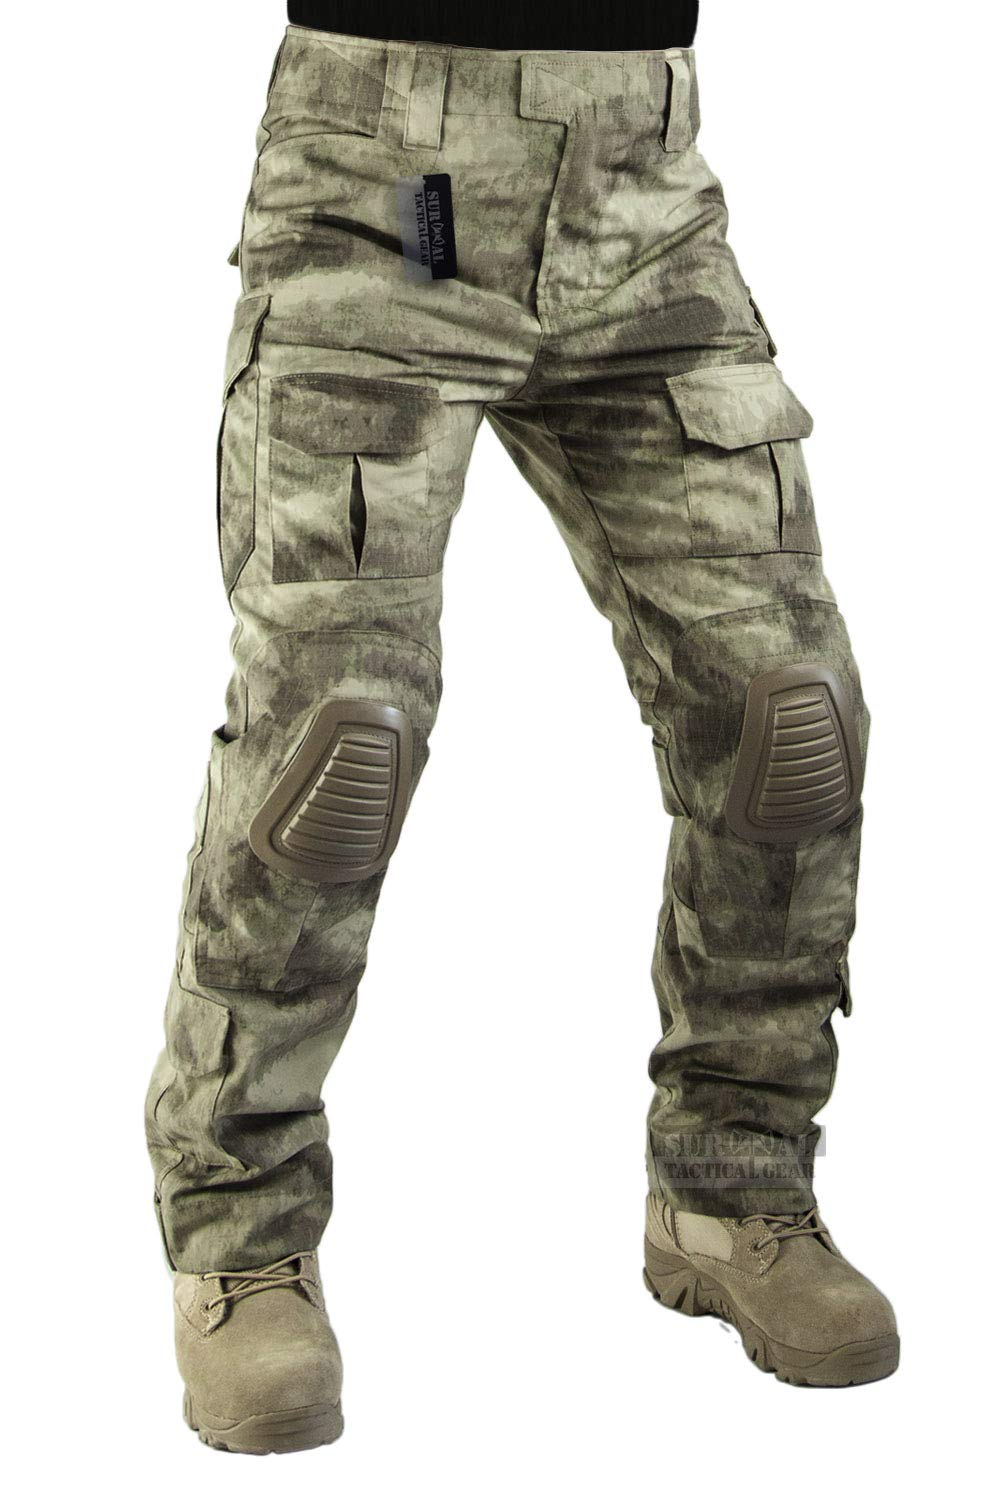 ZAPT Tactical Pants with Knee Pads Airsoft Hunting BDU Combat Pant Army Camo Military Trousers(AU Camo, S32)